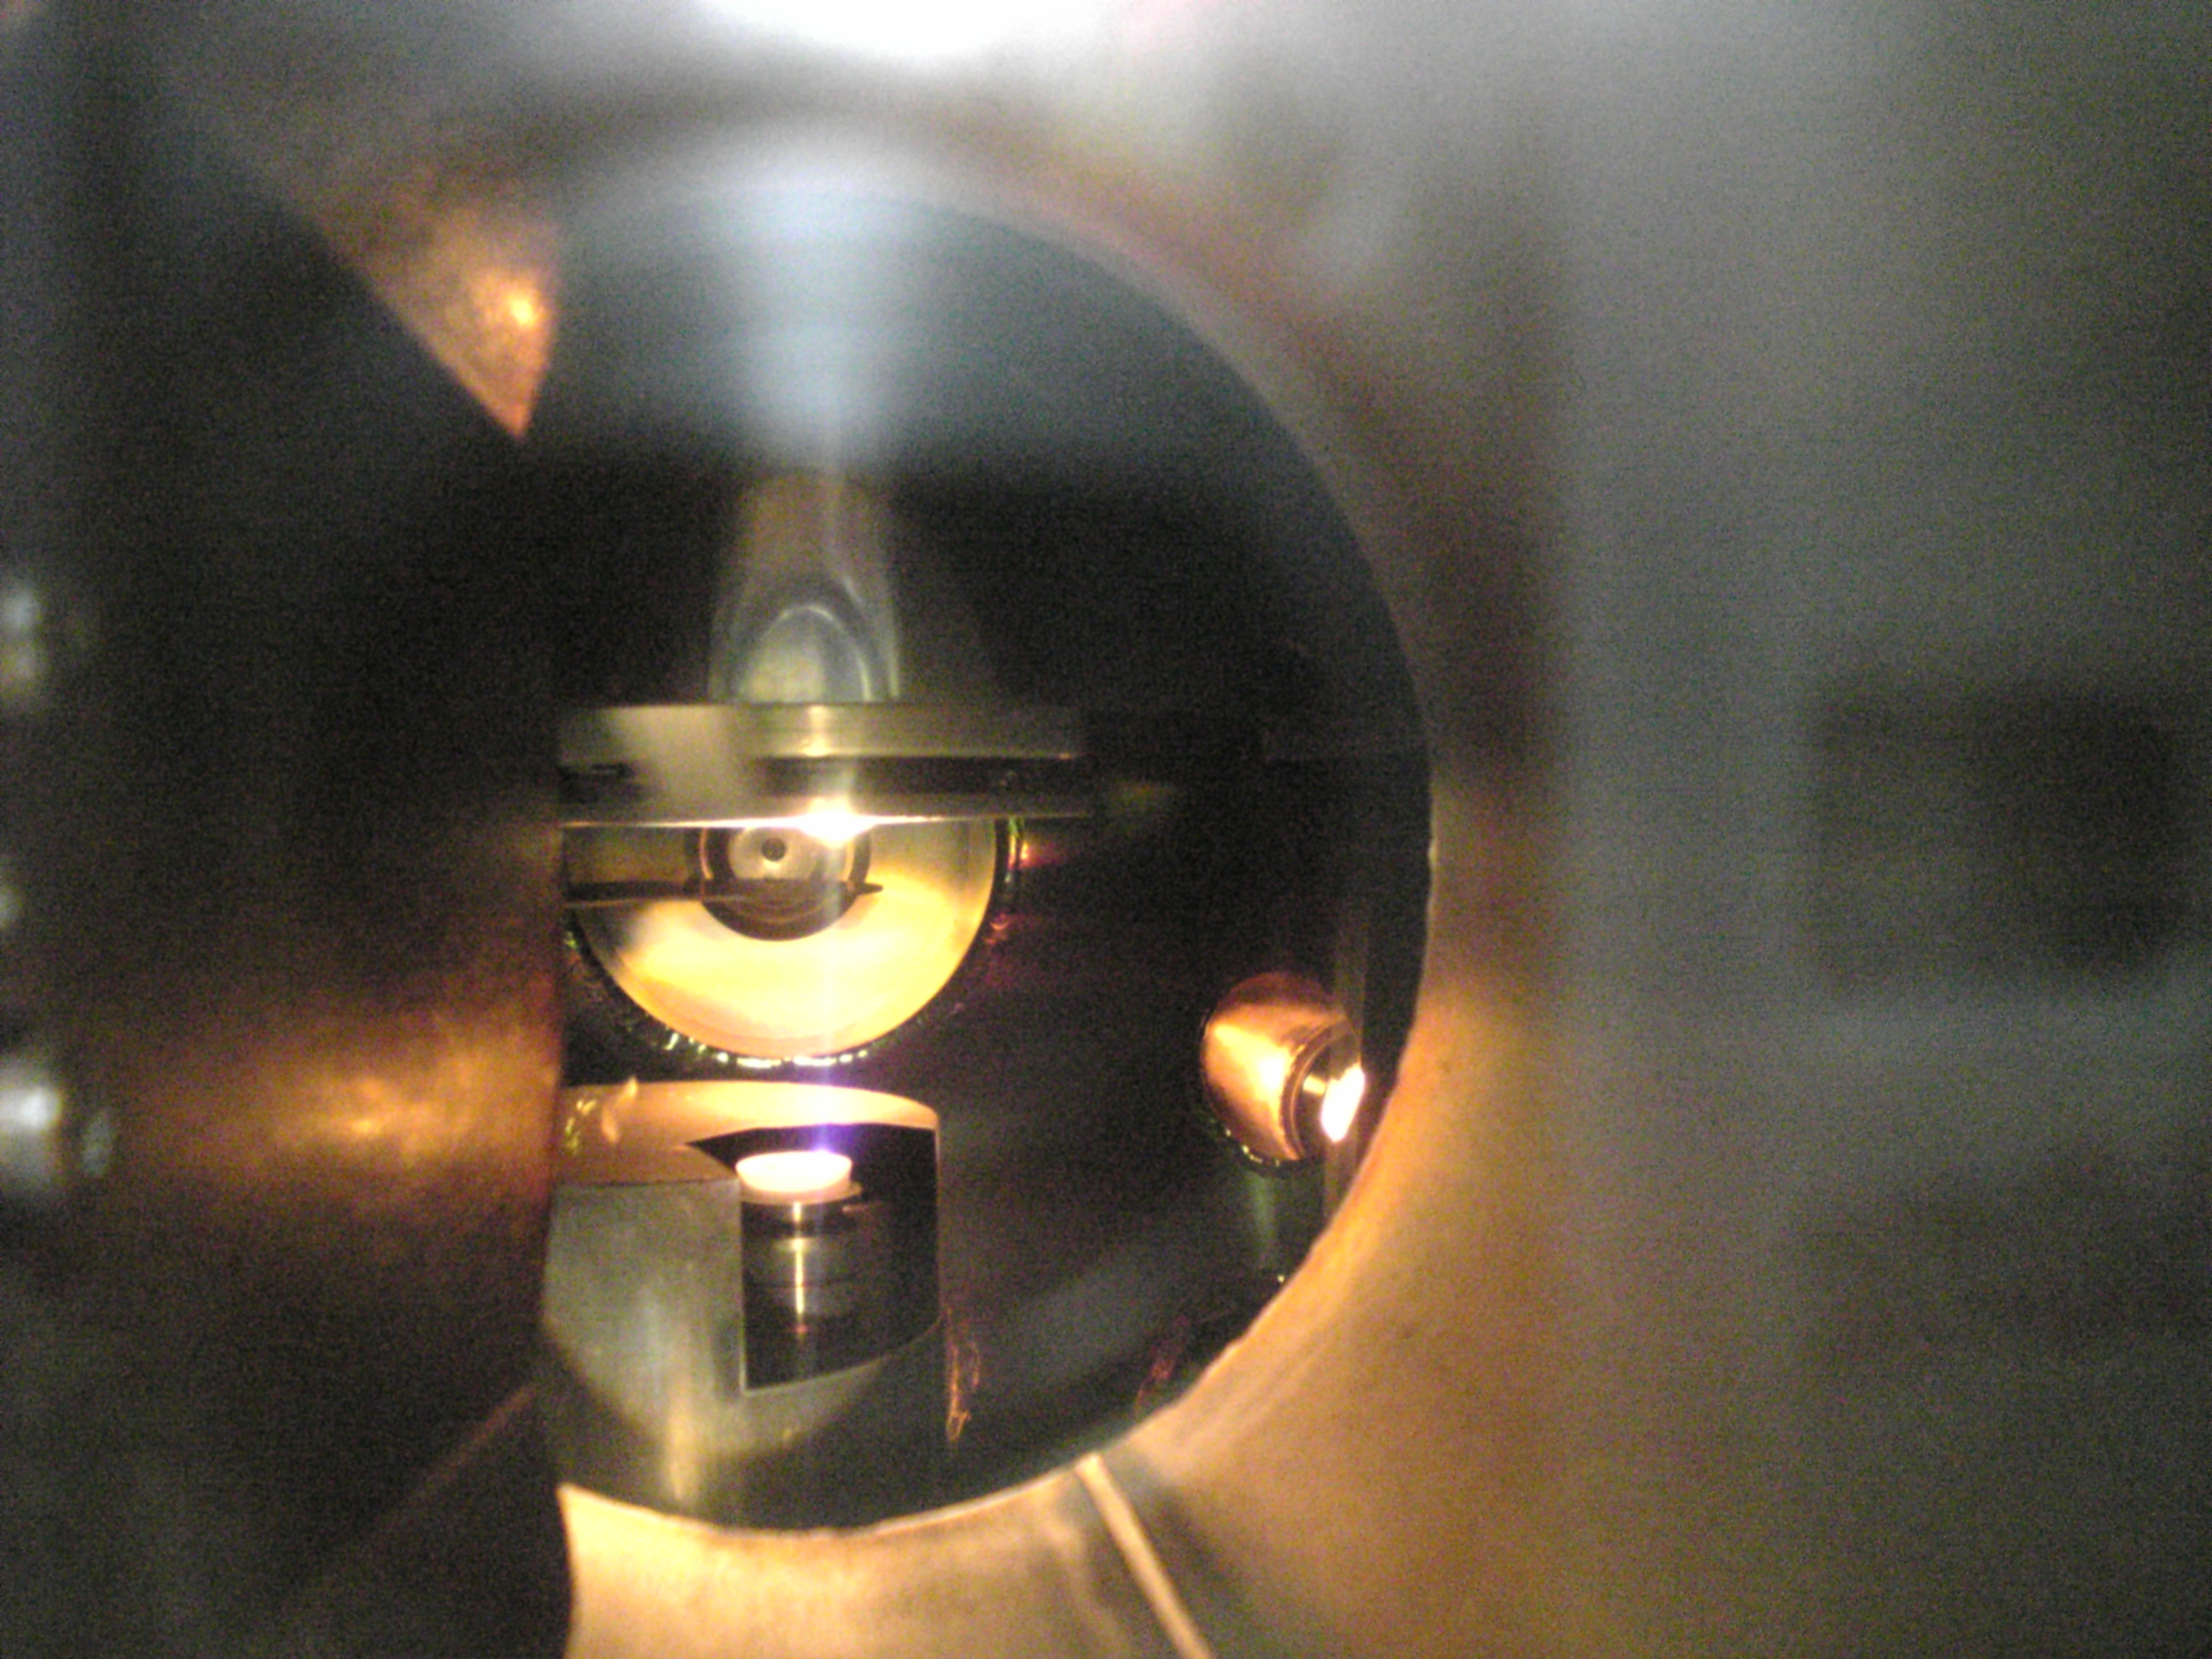 View through a metallic tube, an orange light shines at the end of the tube